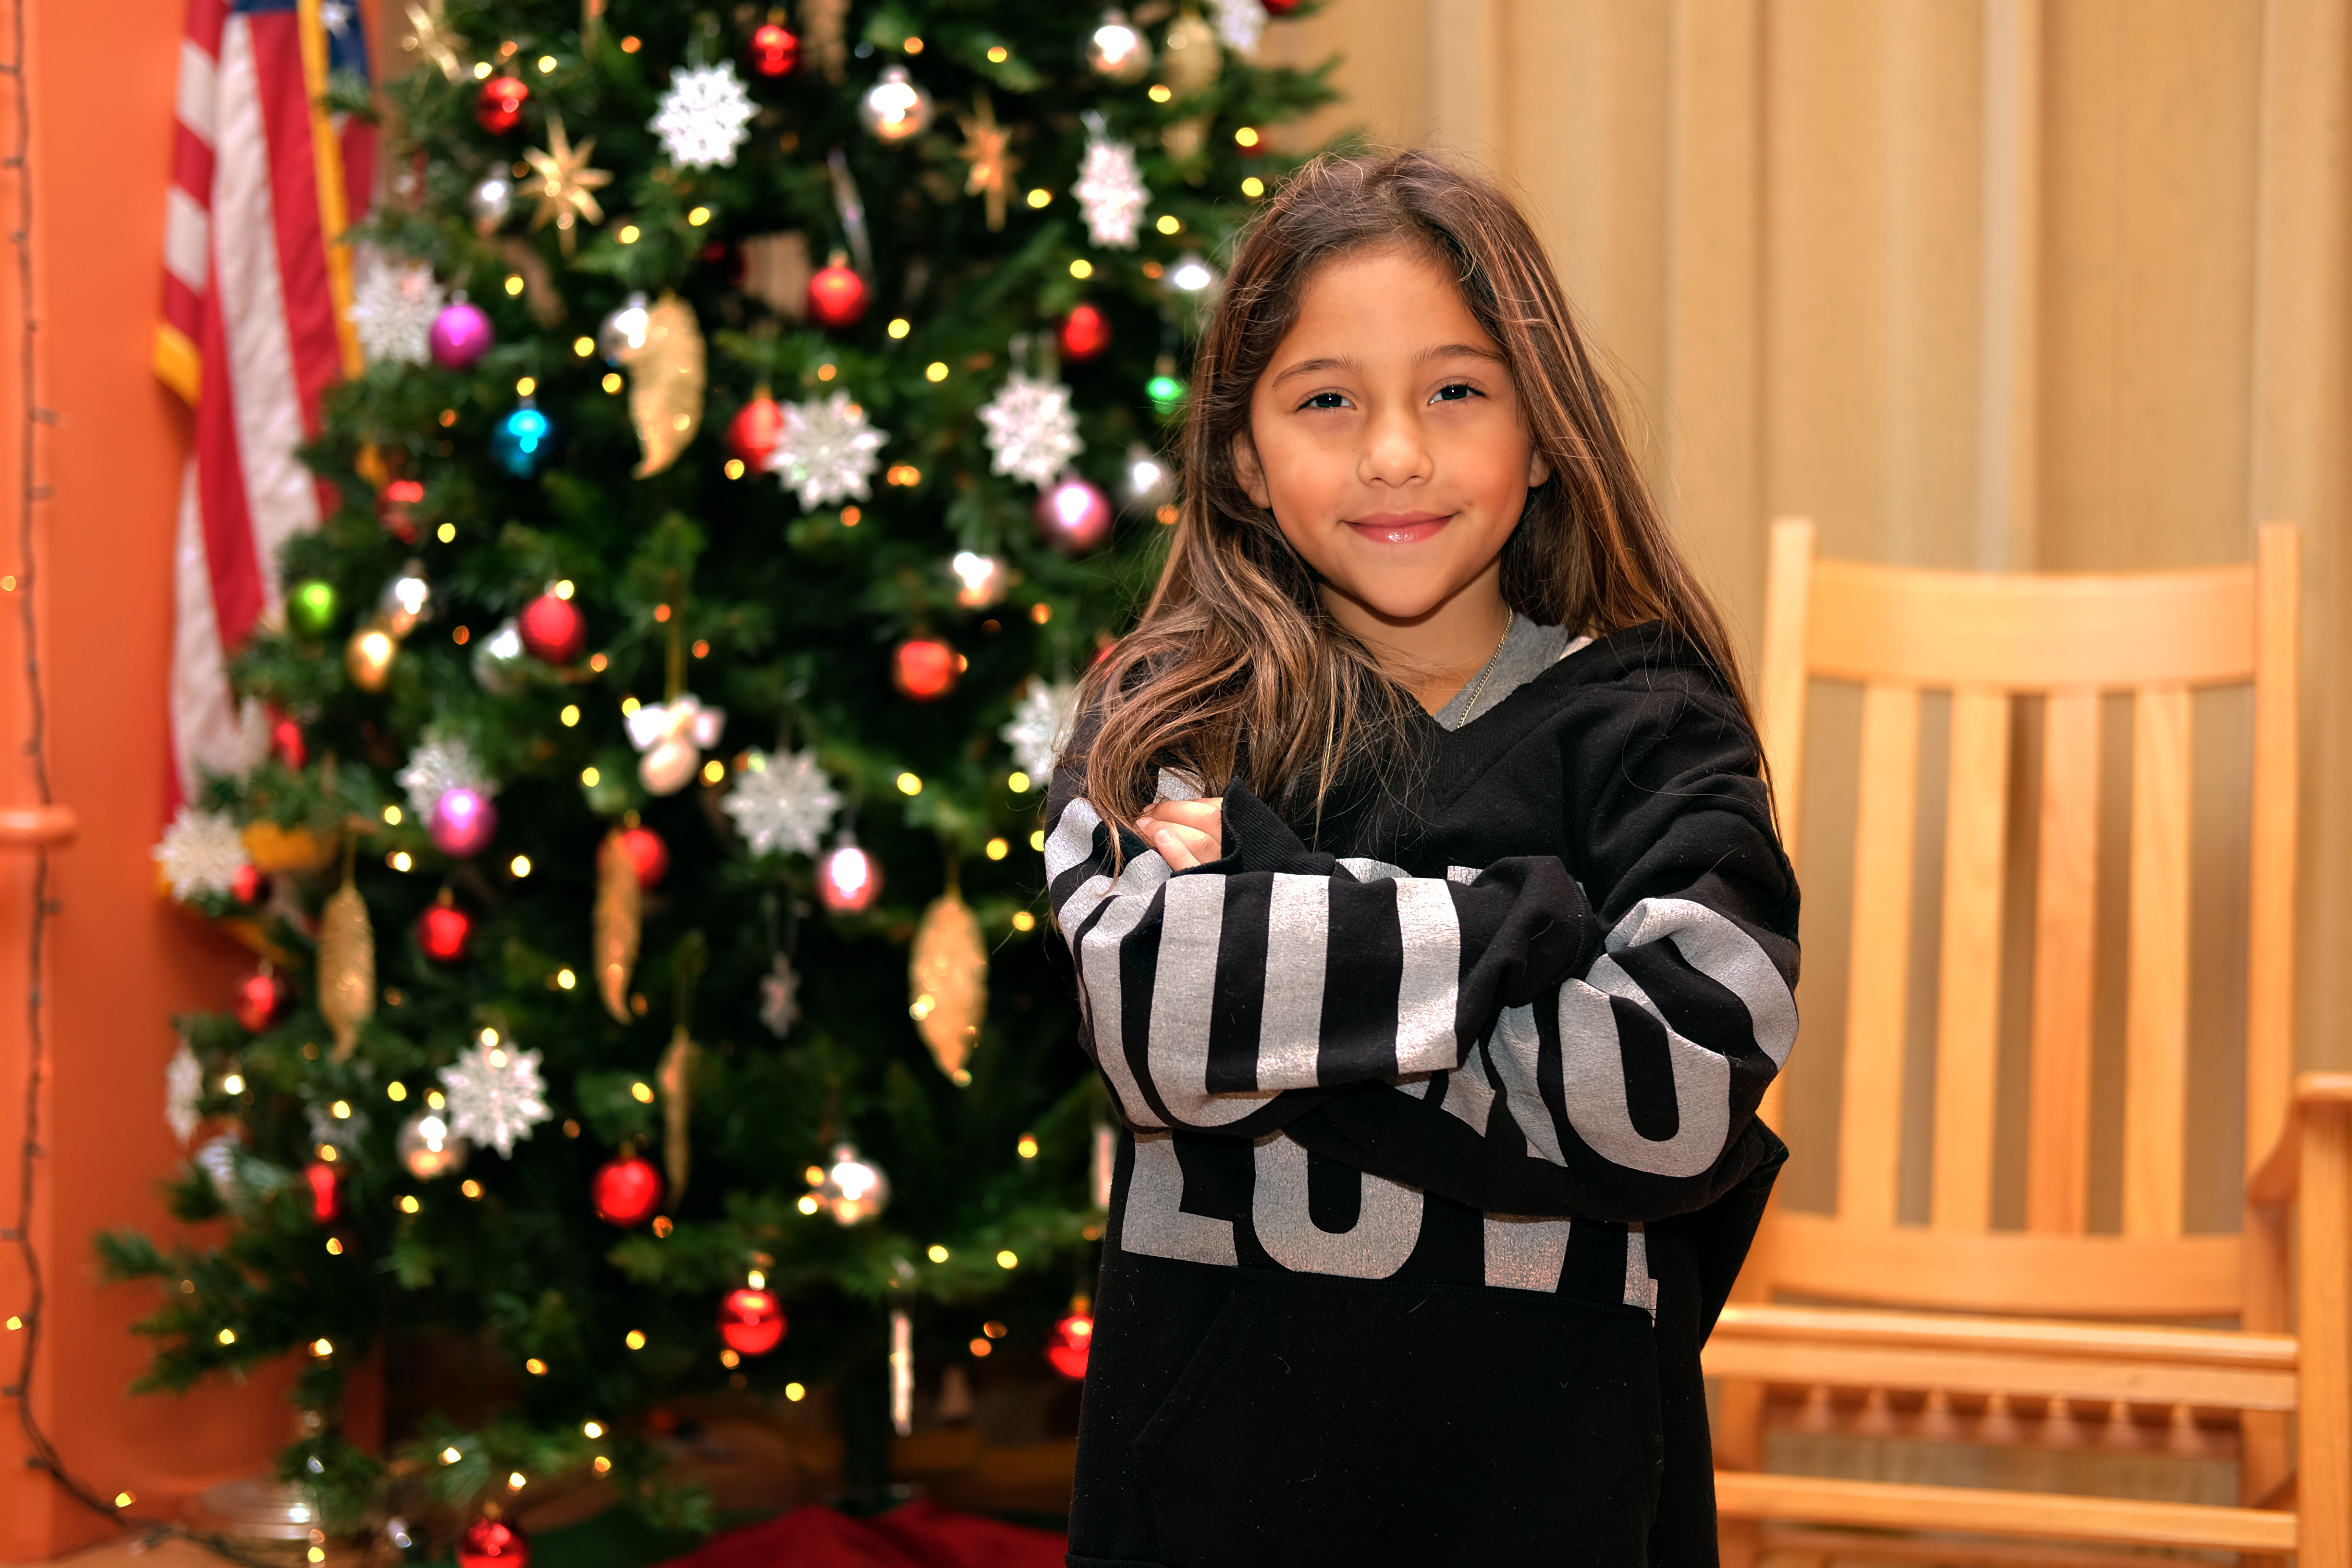 Rodriguez Elementary first-grader wins Region One Holiday Art Contest